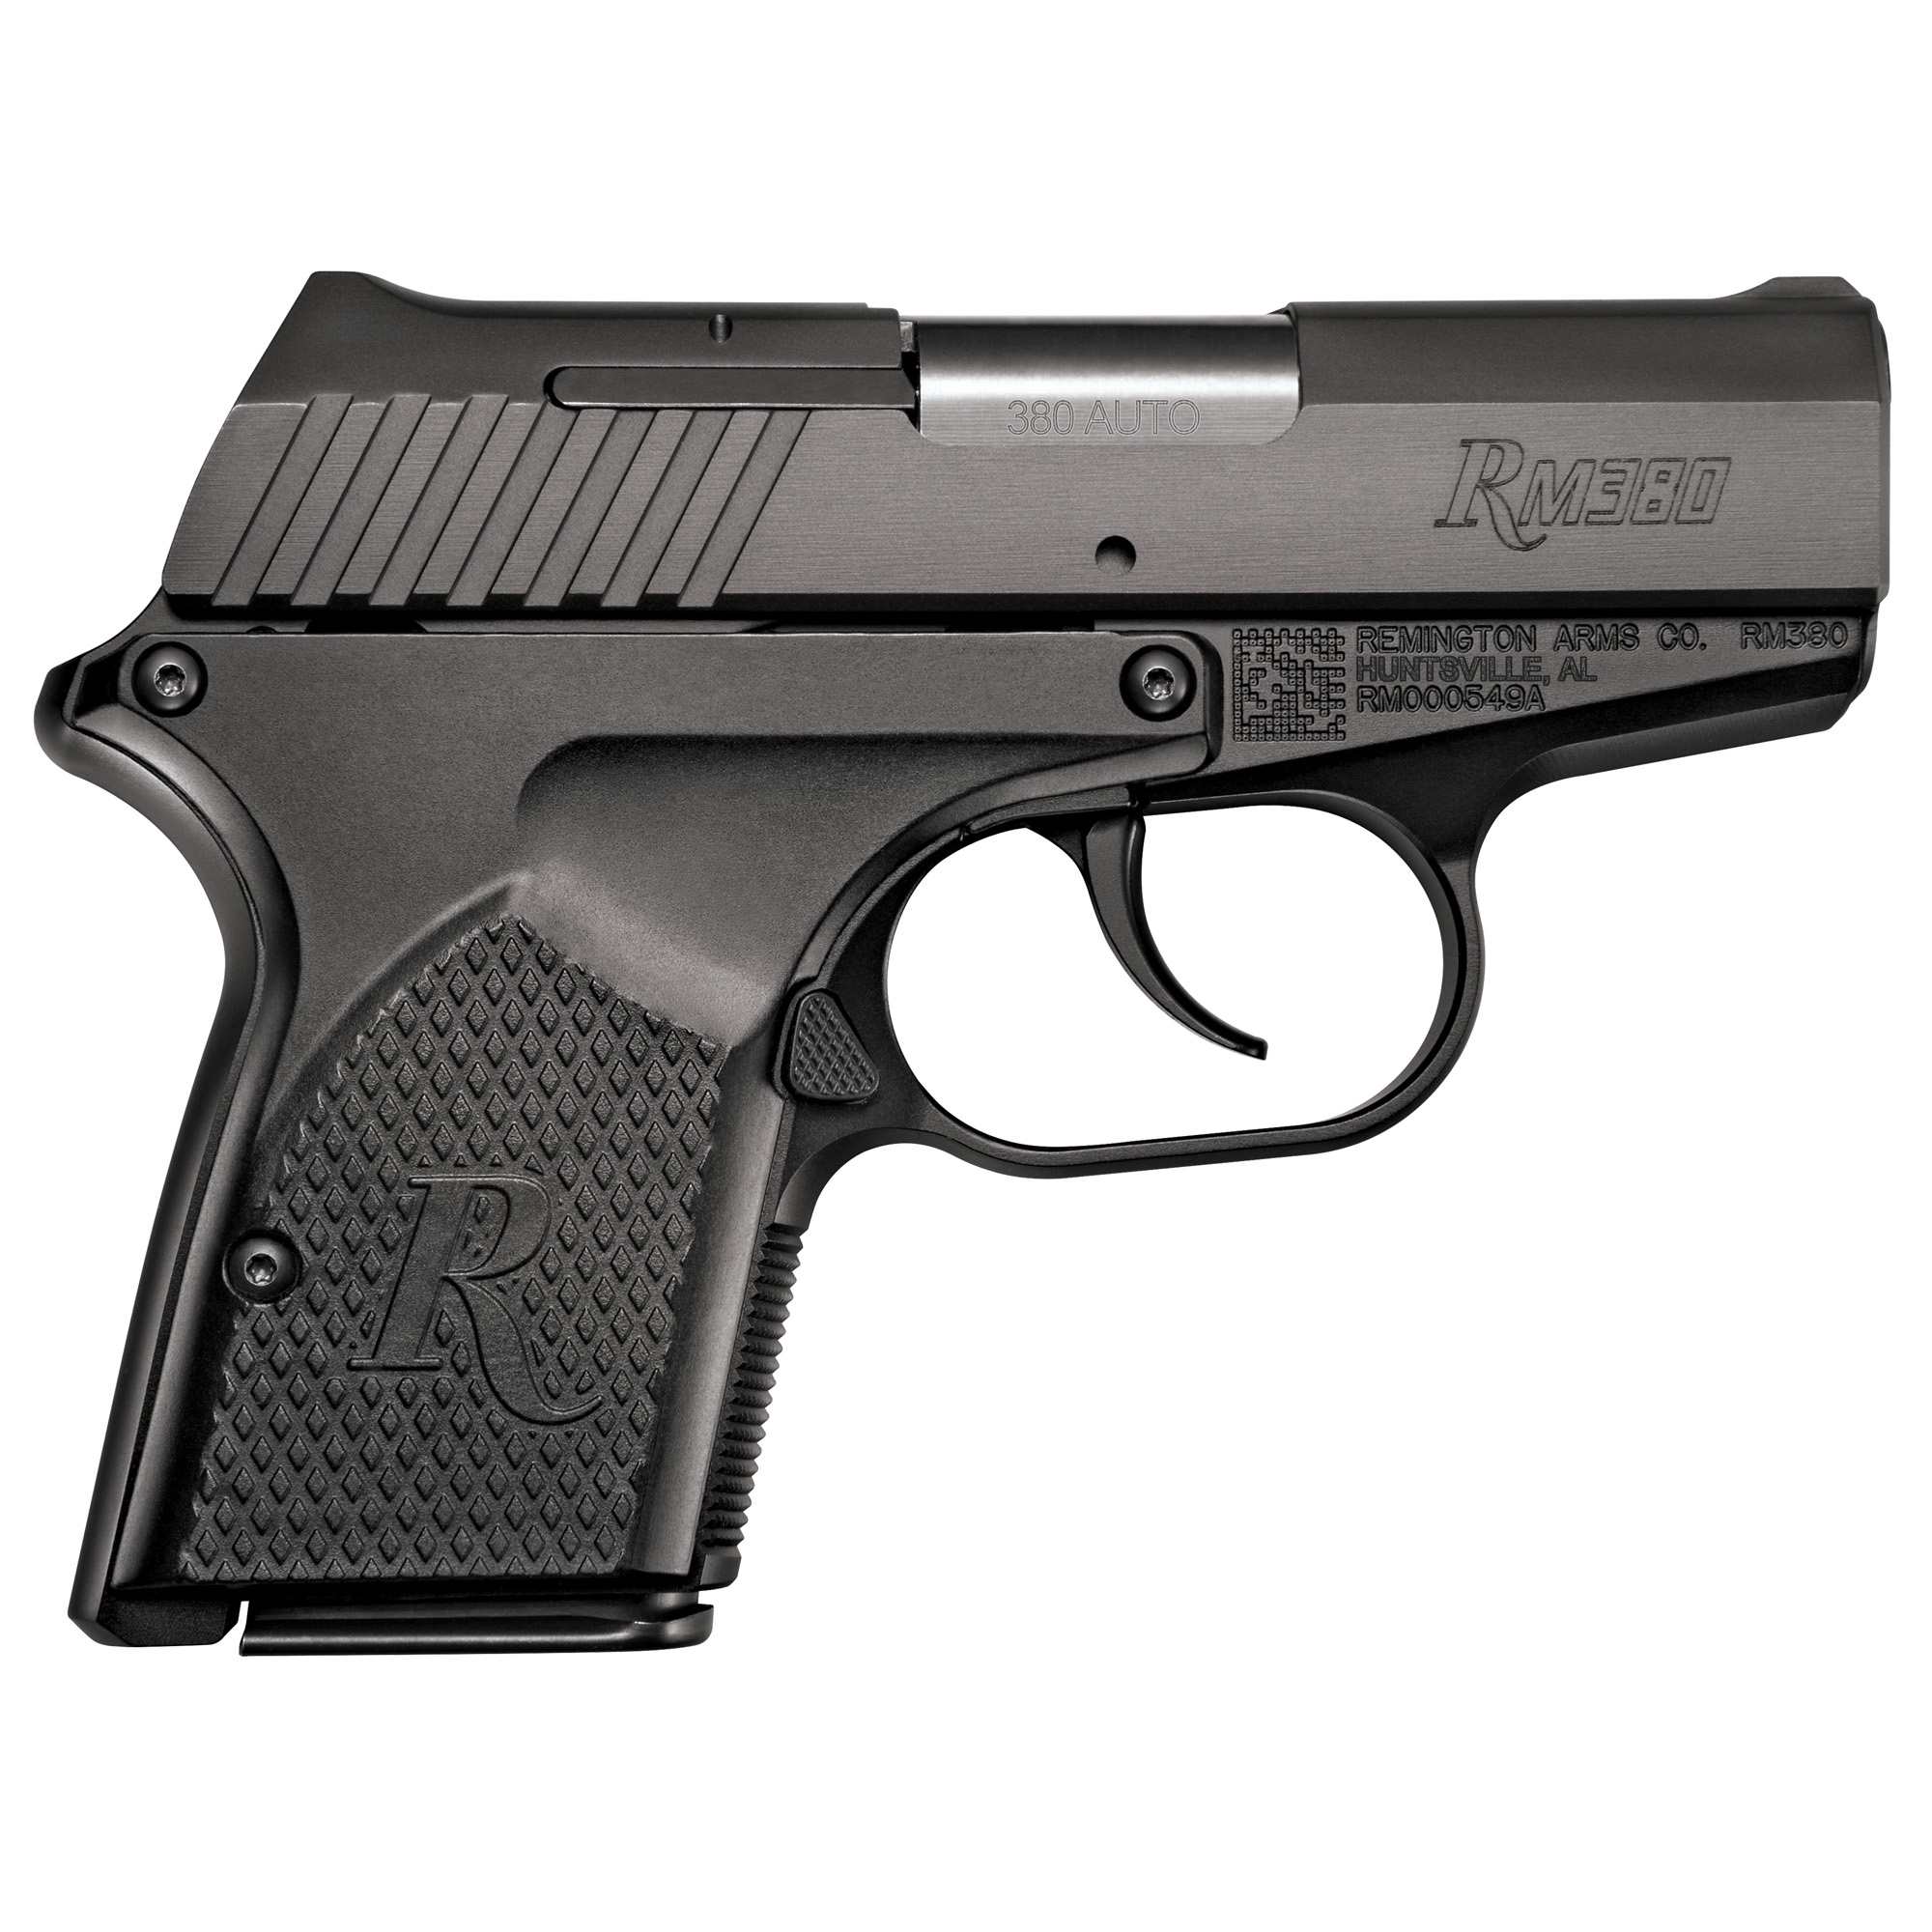 Never before has a handgun so diminutive been built to such high standards for performance and reliability. Every feature of the RM380 has been fine-tuned to deliver unfailing function with unrivaled accuracy and control in the most extreme conditions on earth - the fight of your life. It's simply the most complete fusion of confidence and concealment to ever hit every Day Carry category. Includes two 6-round magazines.